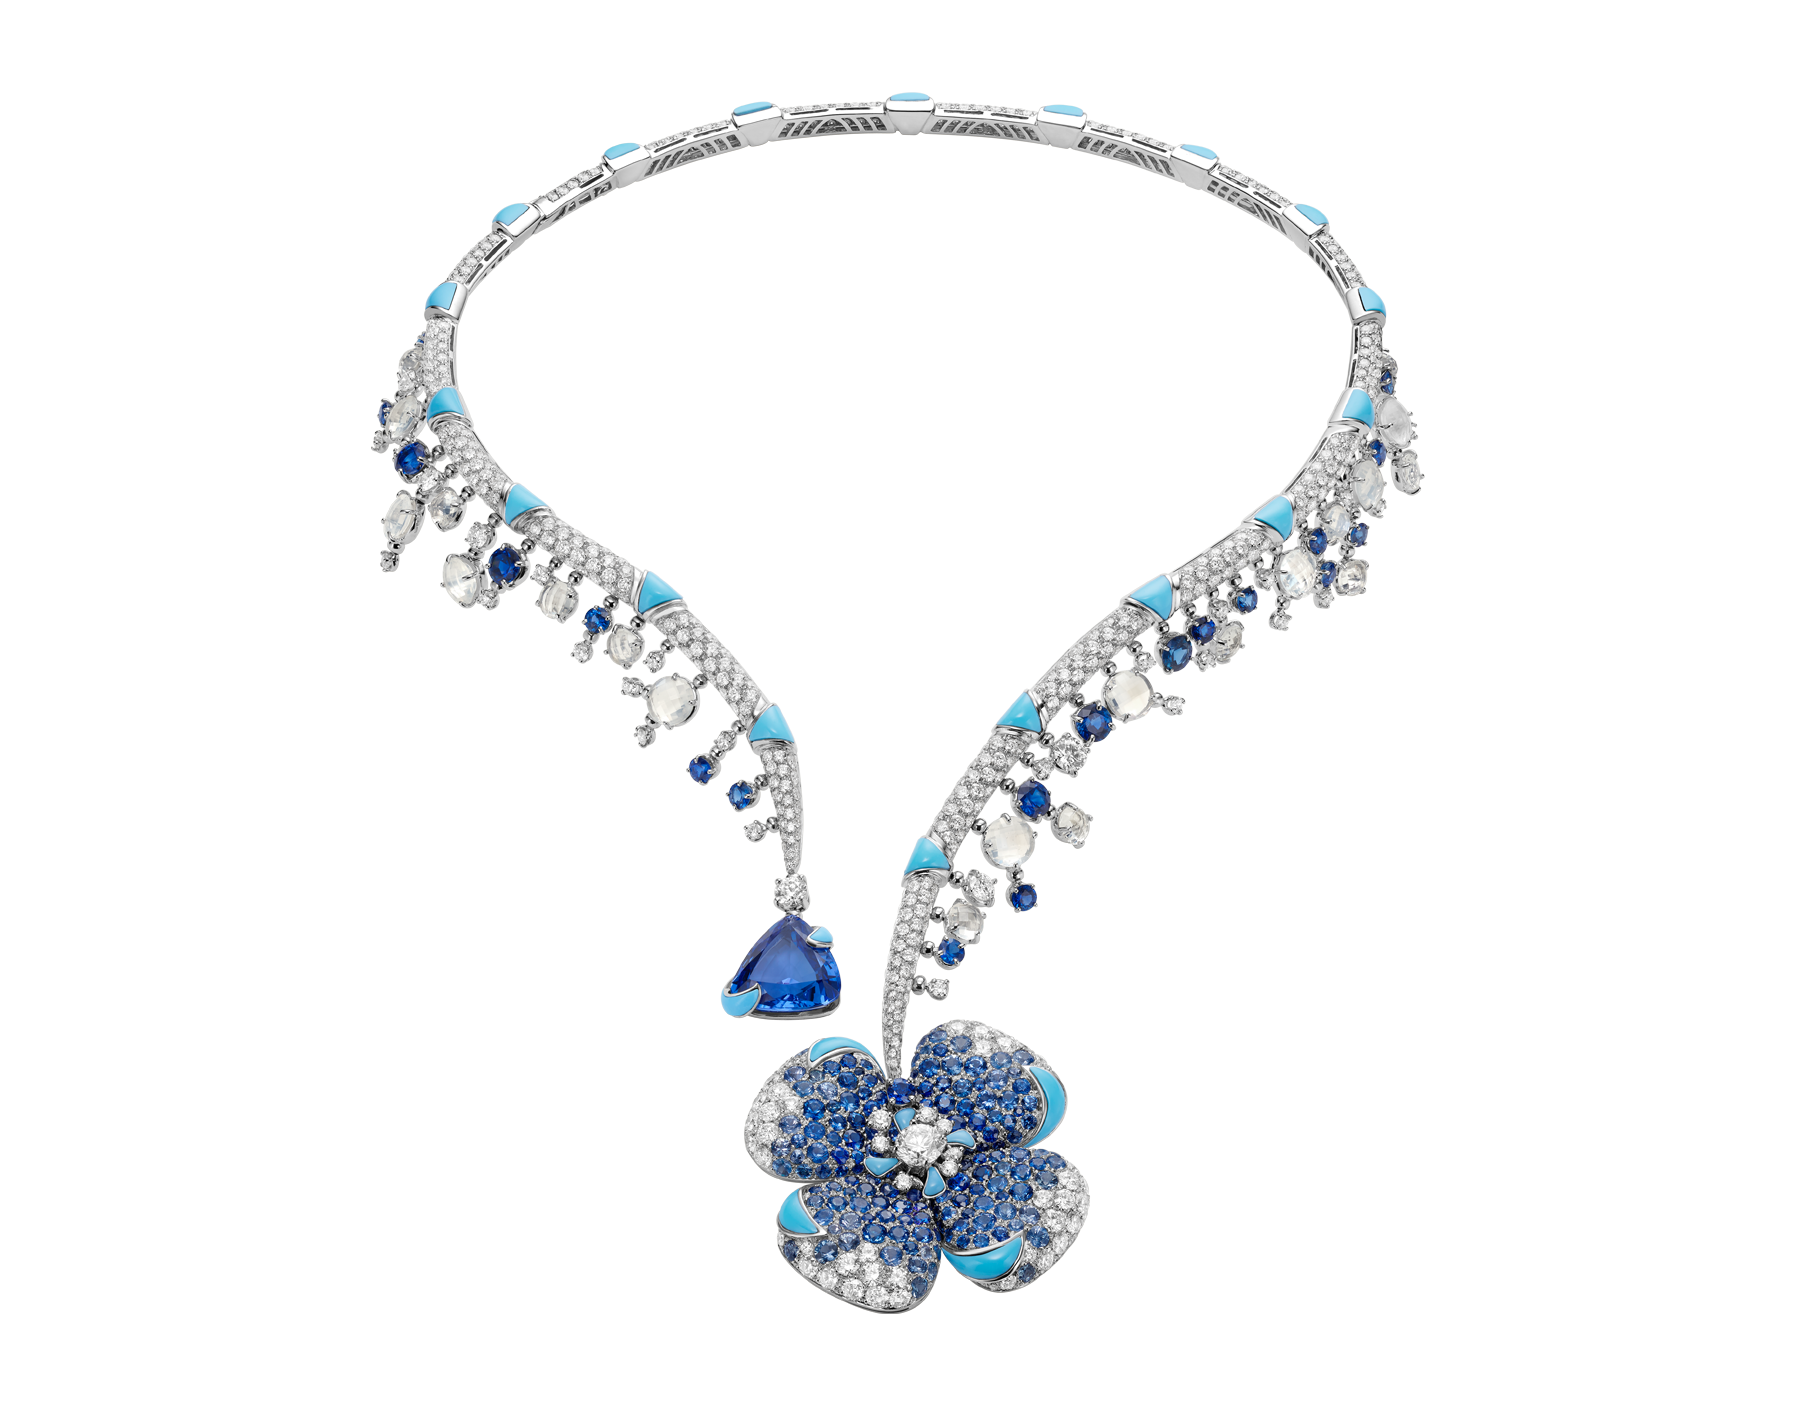 f609ef5f3 Necklace 261476-E - Discover Bvlgari's collections and read more ...